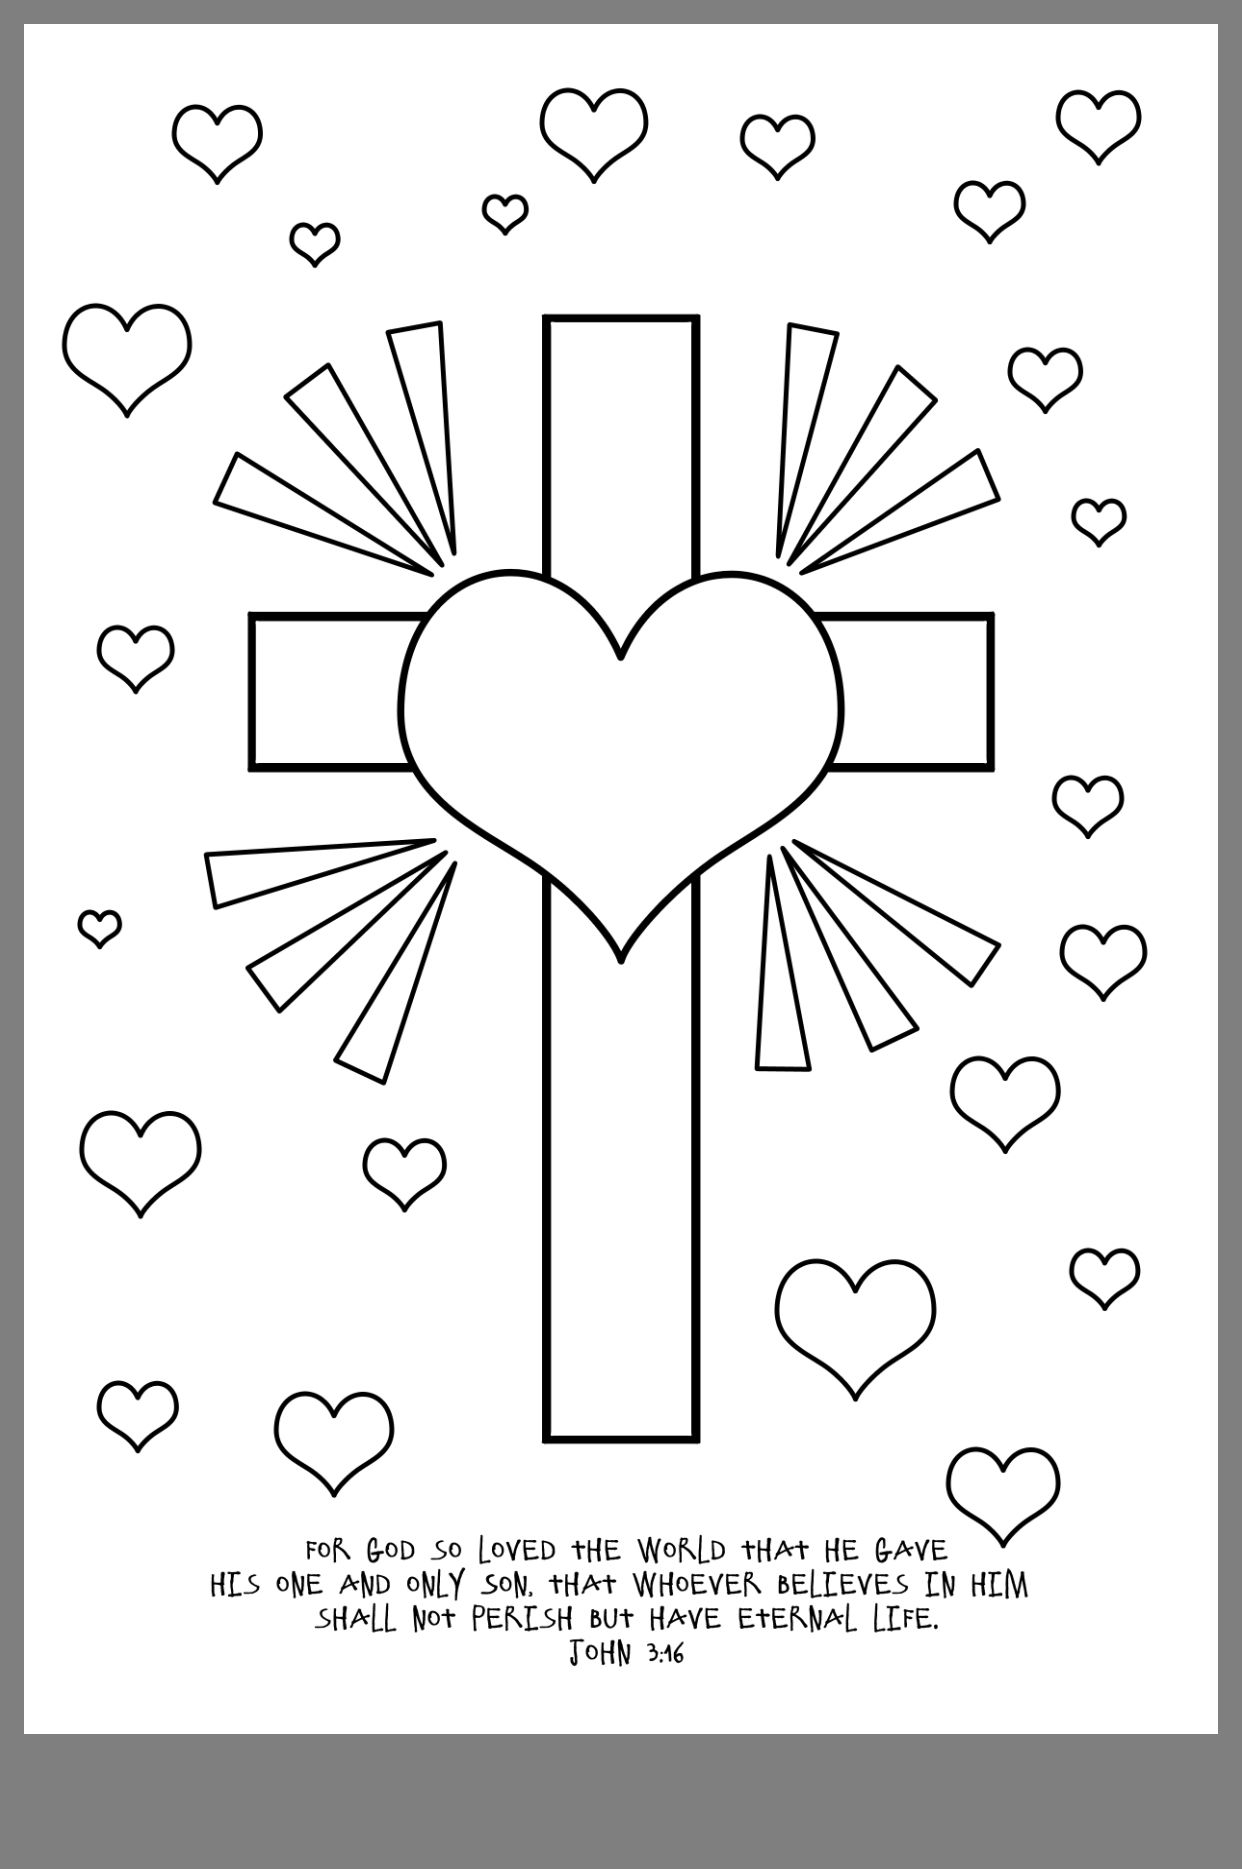 Pin By Anja C Baving Dorsman On Good News Club Christian Coloring Bible Crafts For Kids Bible For Kids